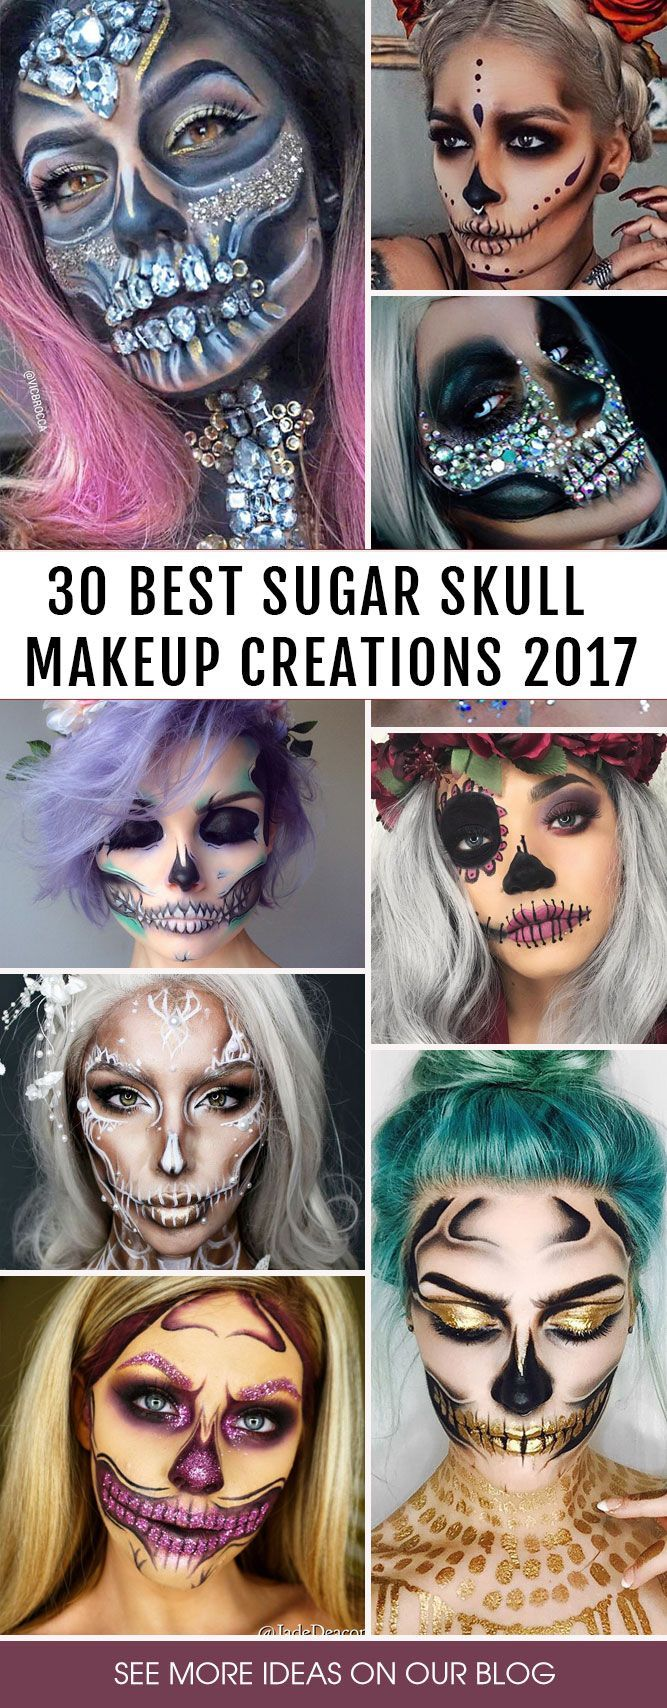 Sugar skull makeup is not something that everyone will be able to replicate. But once you master the art, there will be no turning back! In a good sense. #Costumes